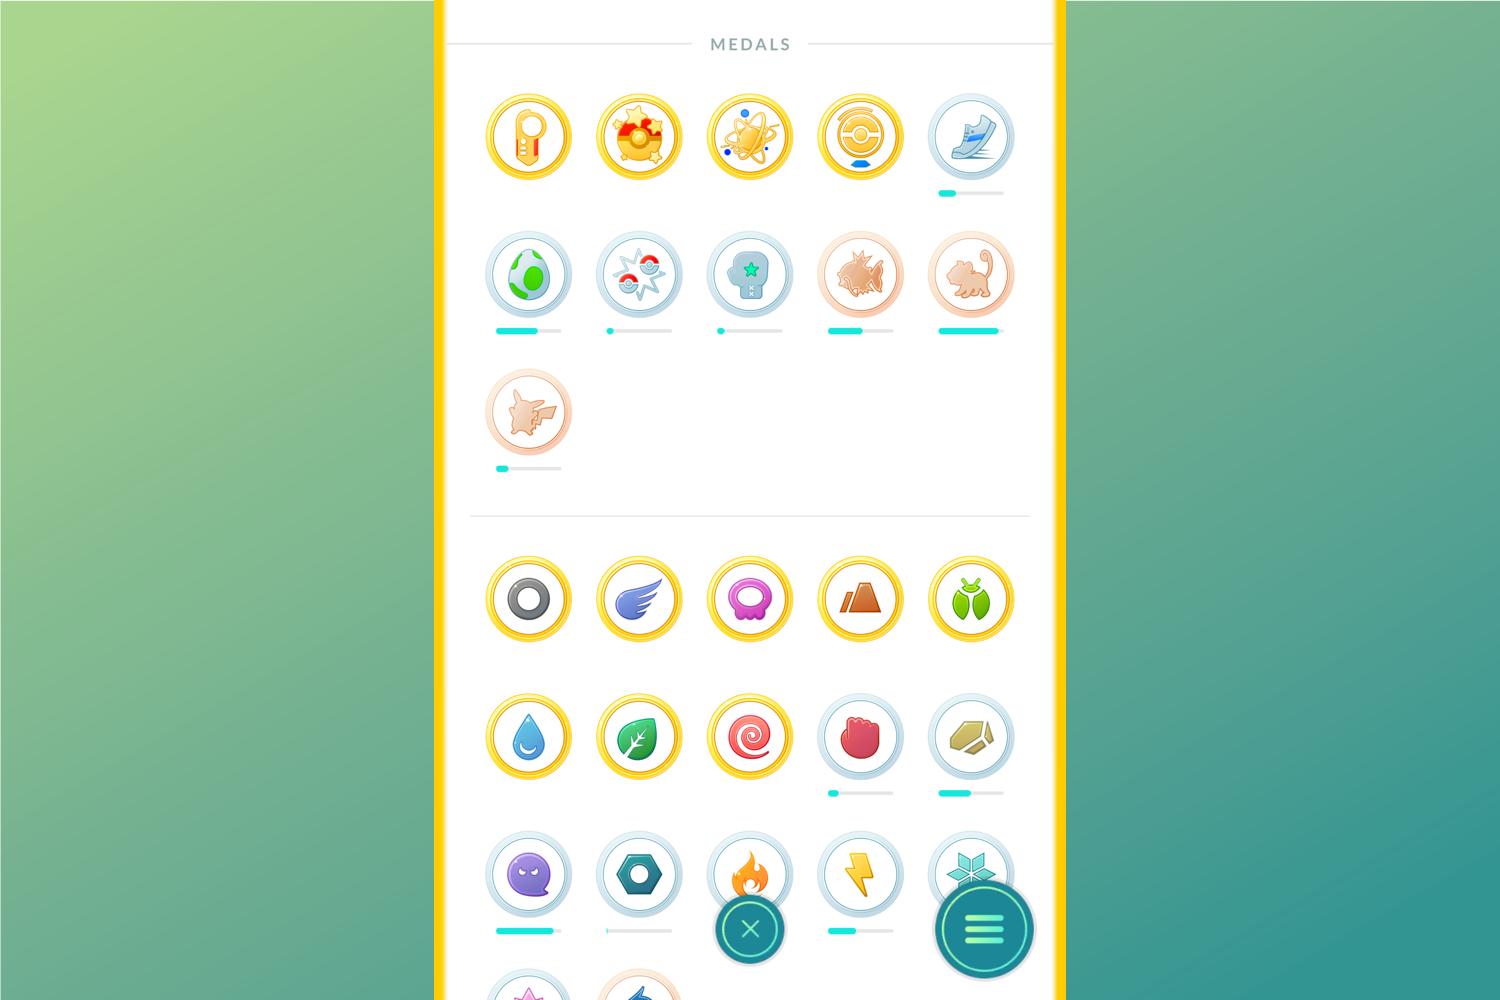 Medals, items, and other achievements would carry over